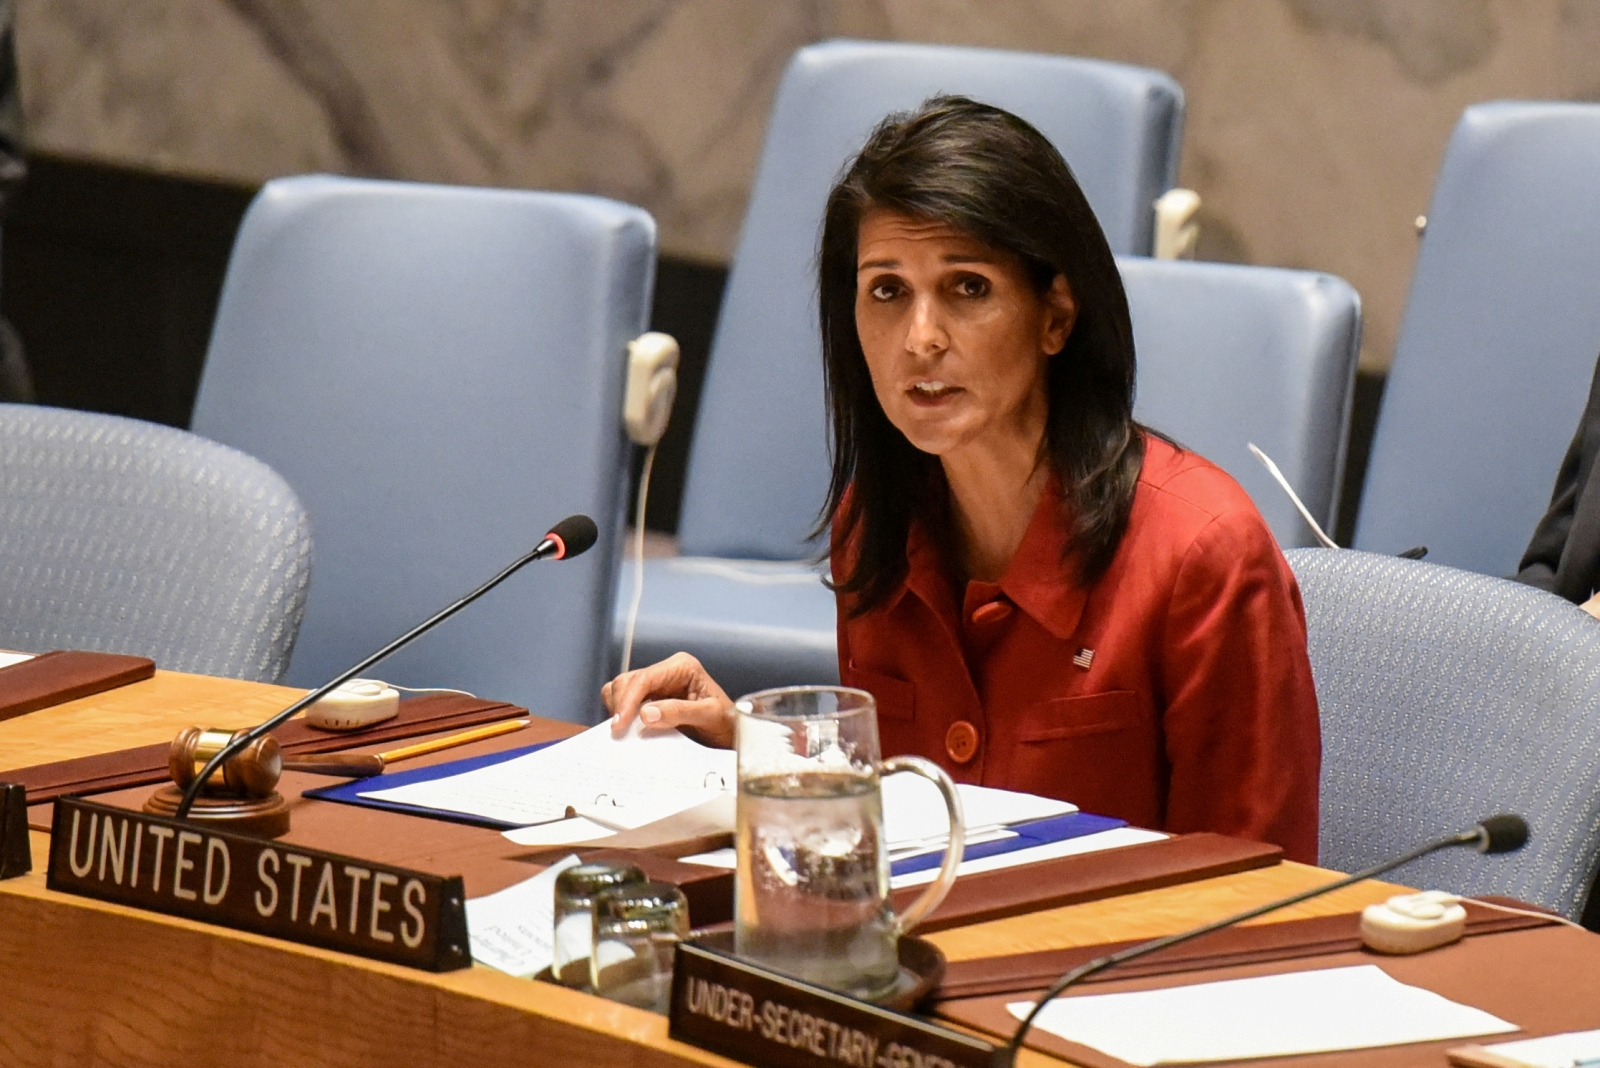 nikki-haley-warns-to-call-out-states-backing-north-korea-and-slap-sanctions-on-them